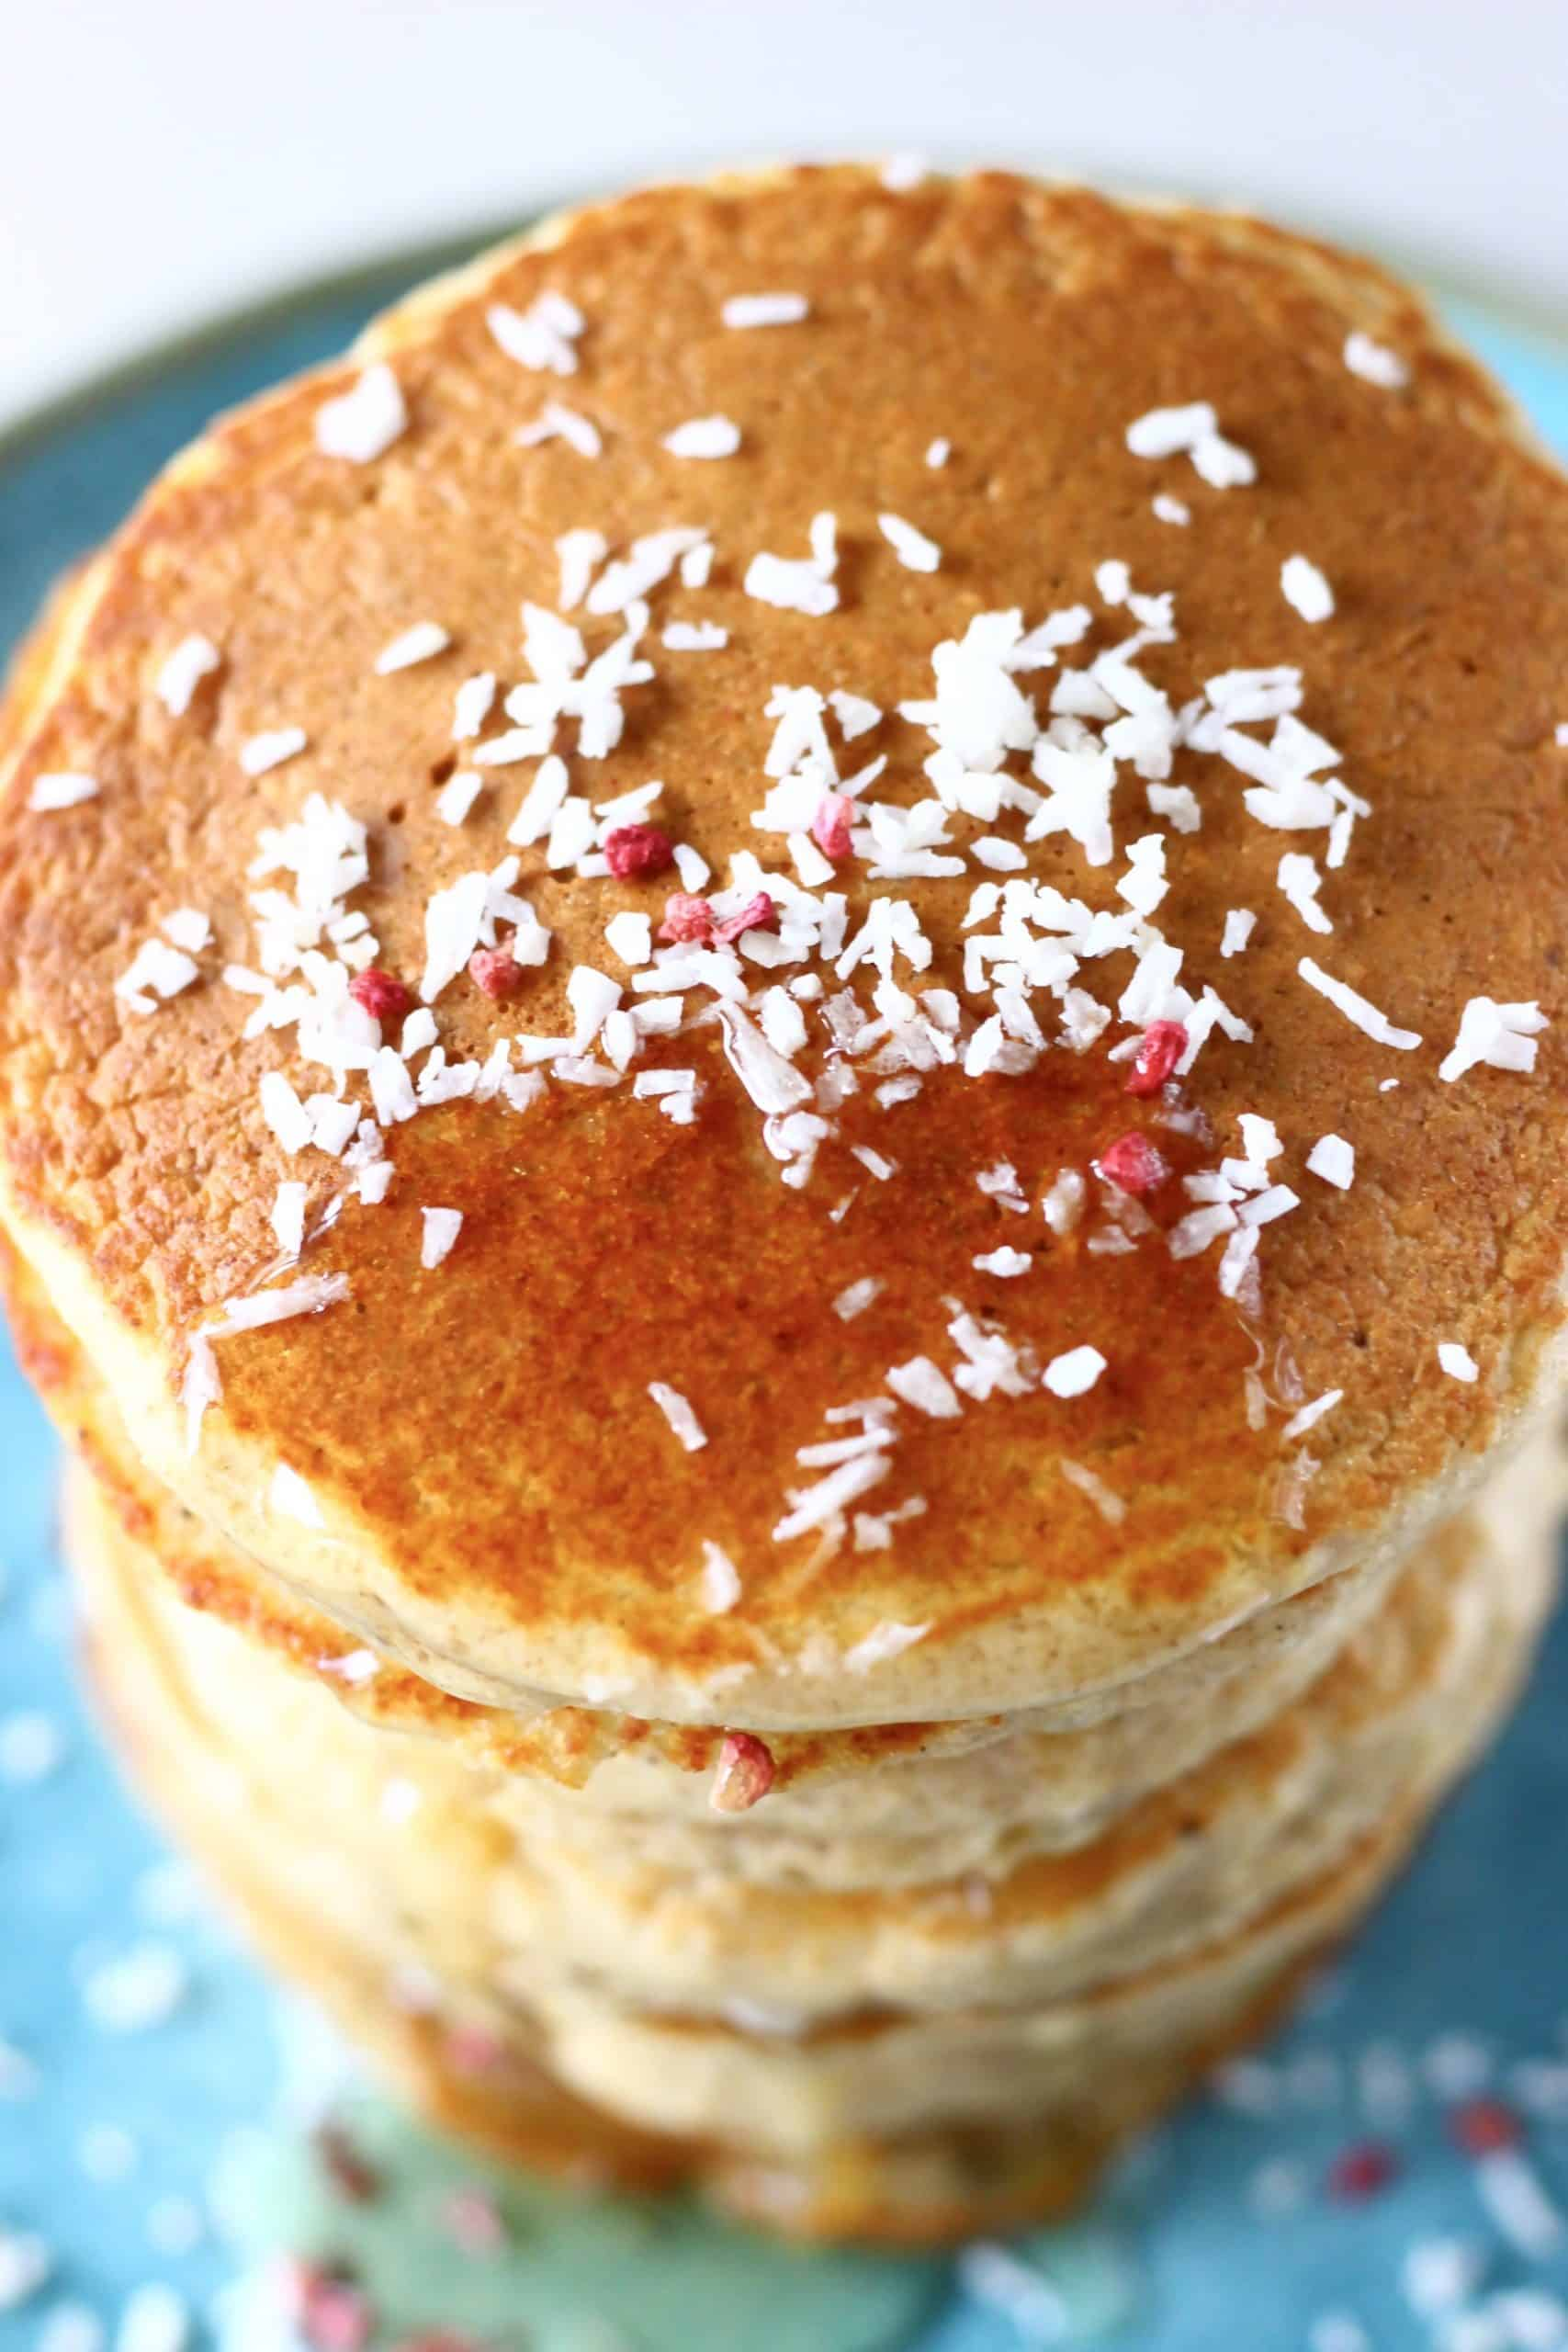 A stack of golden brown pancakes topped with desiccated coconut and syrup on a blue plate